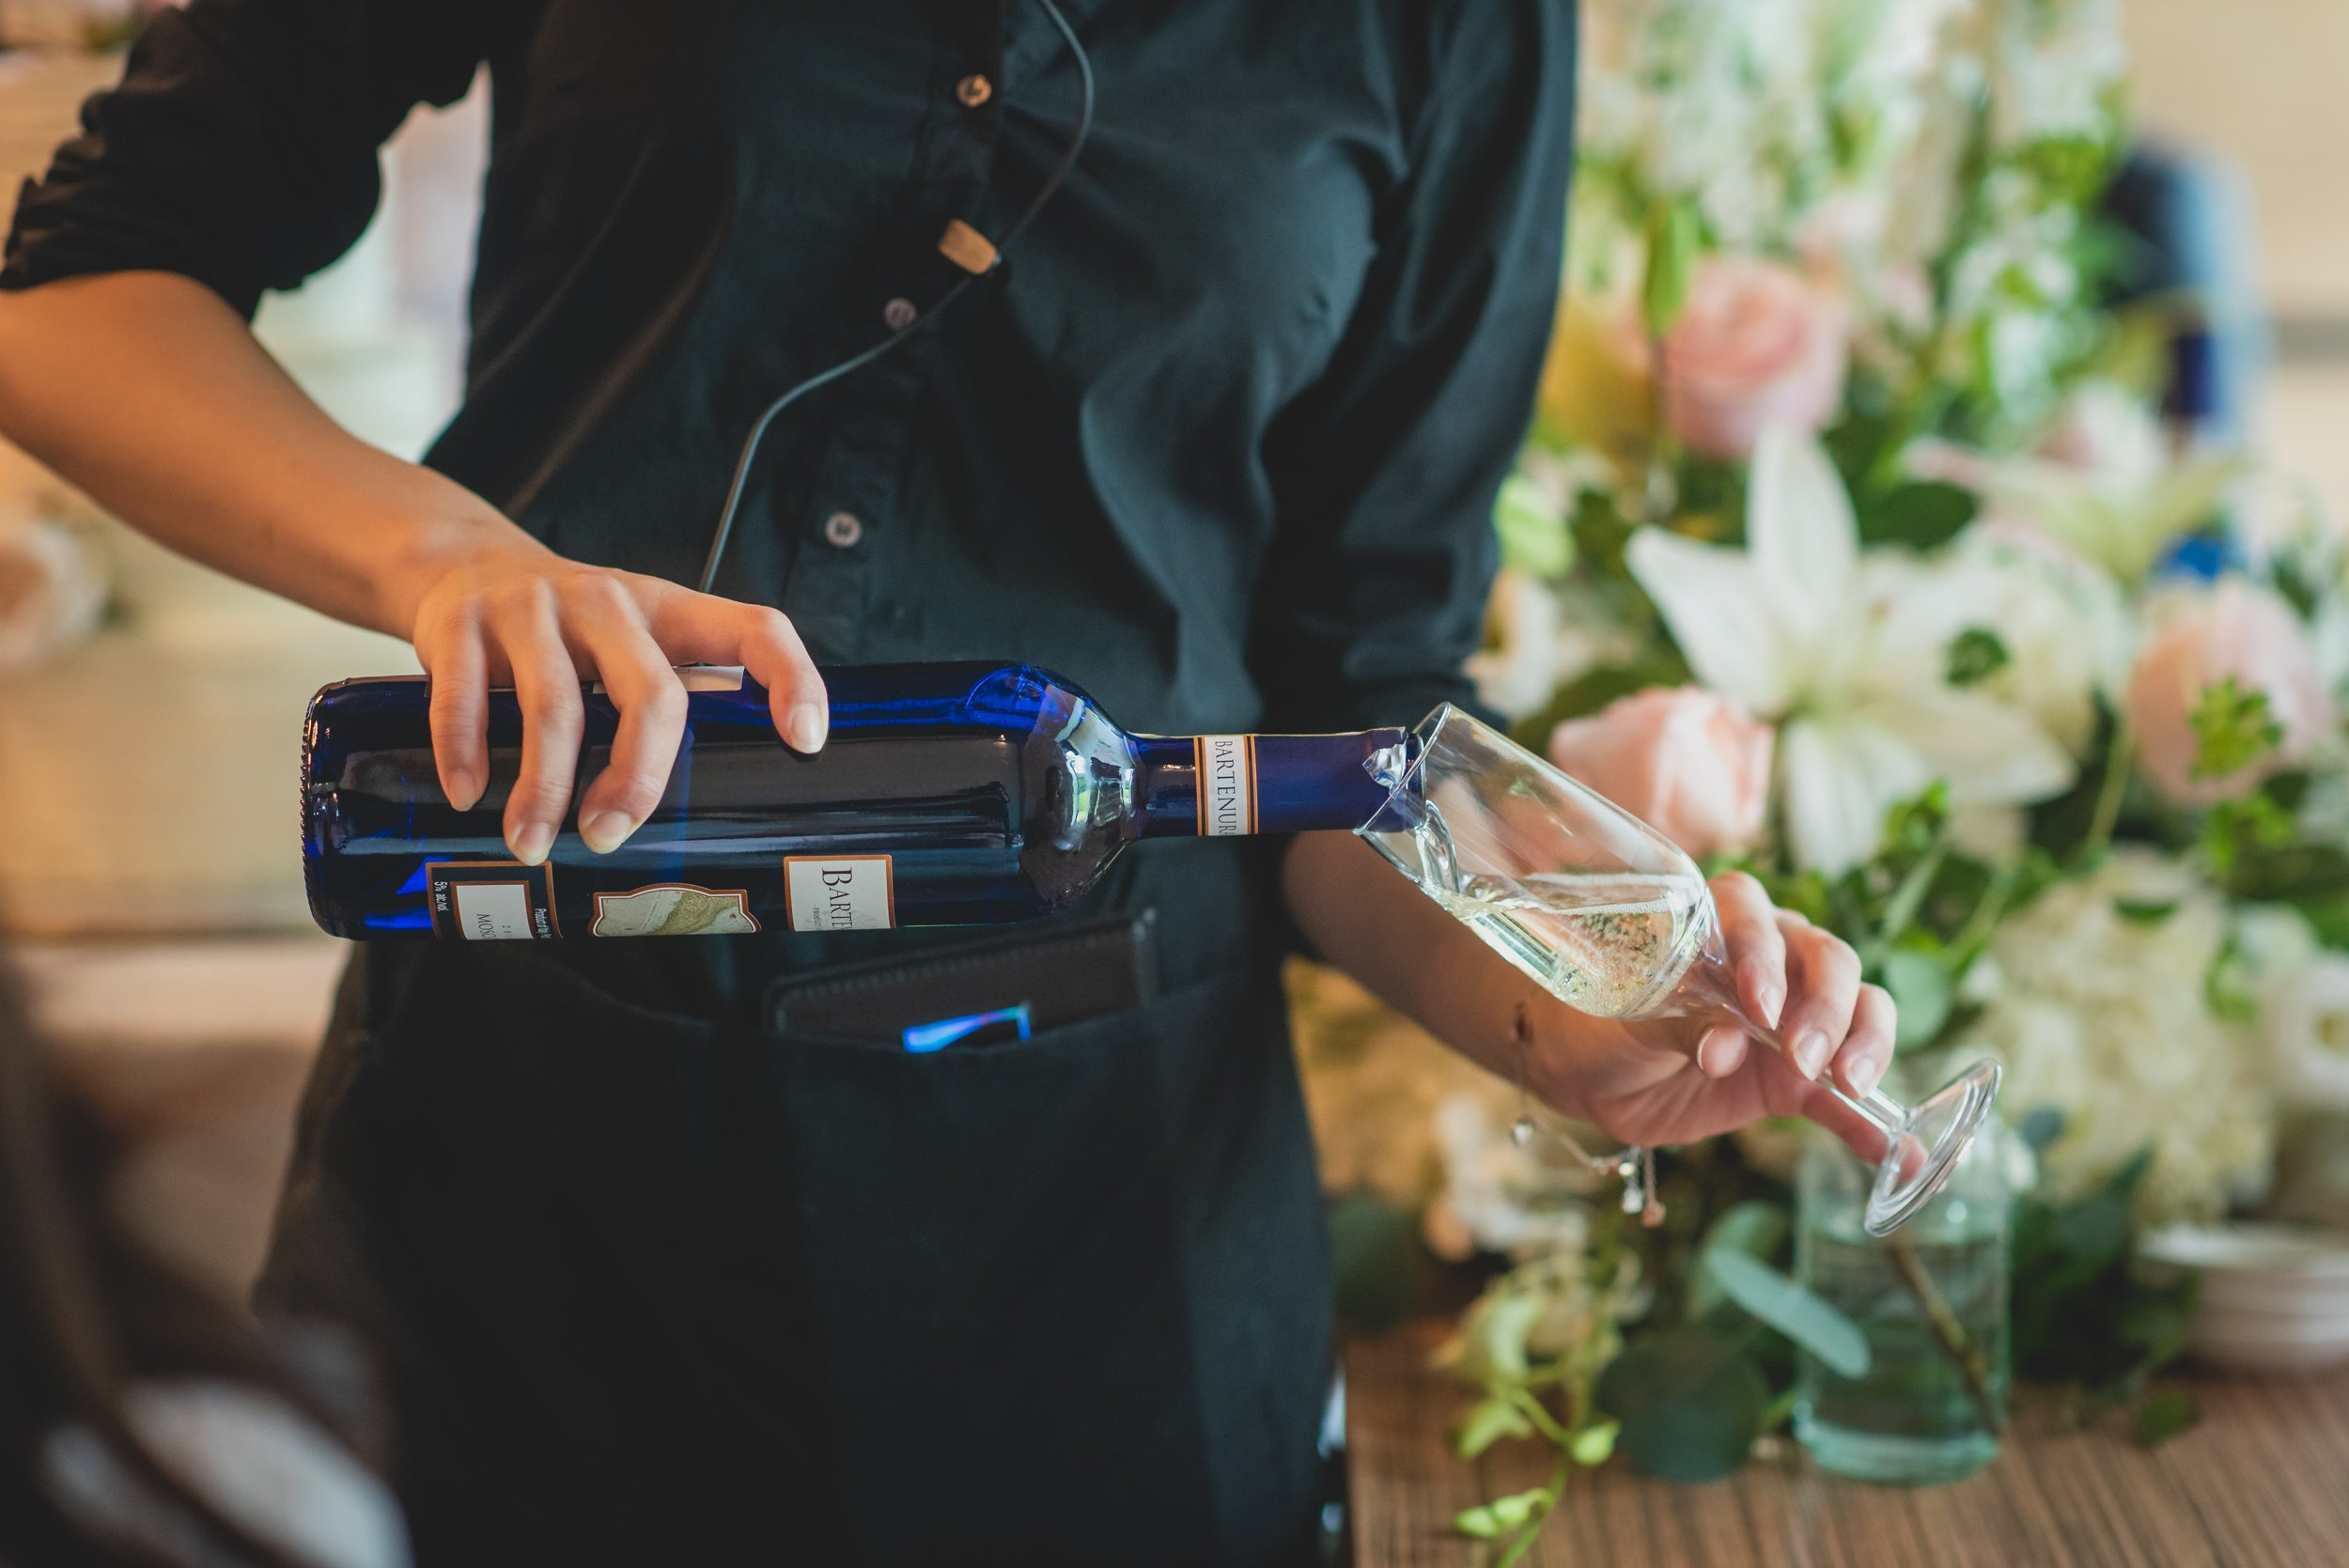 A bartender pouring a glass of wine.